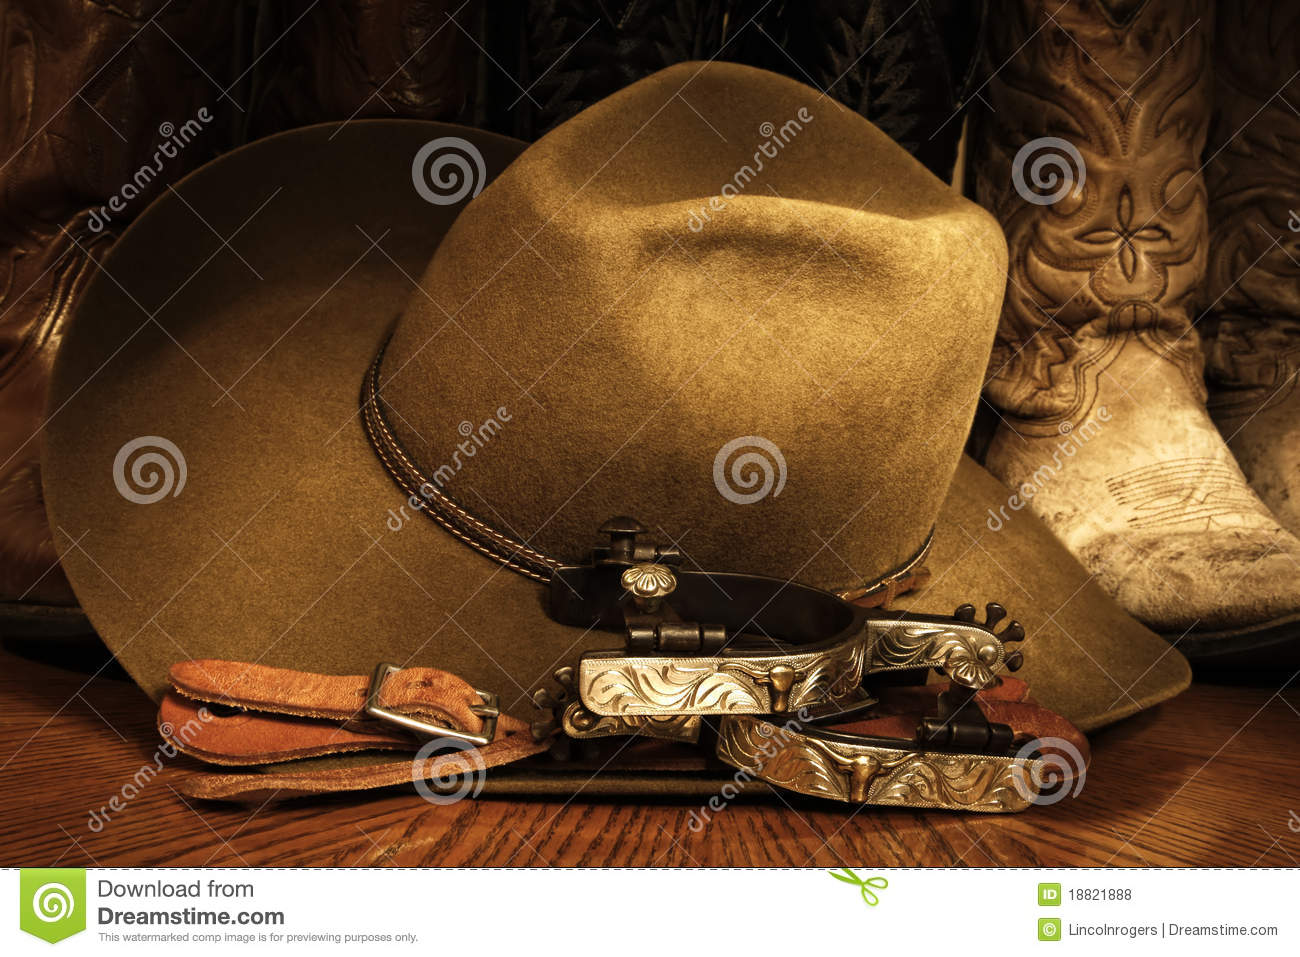 Cowboy Accessories Royalty Free Stock Photos Image 18821888